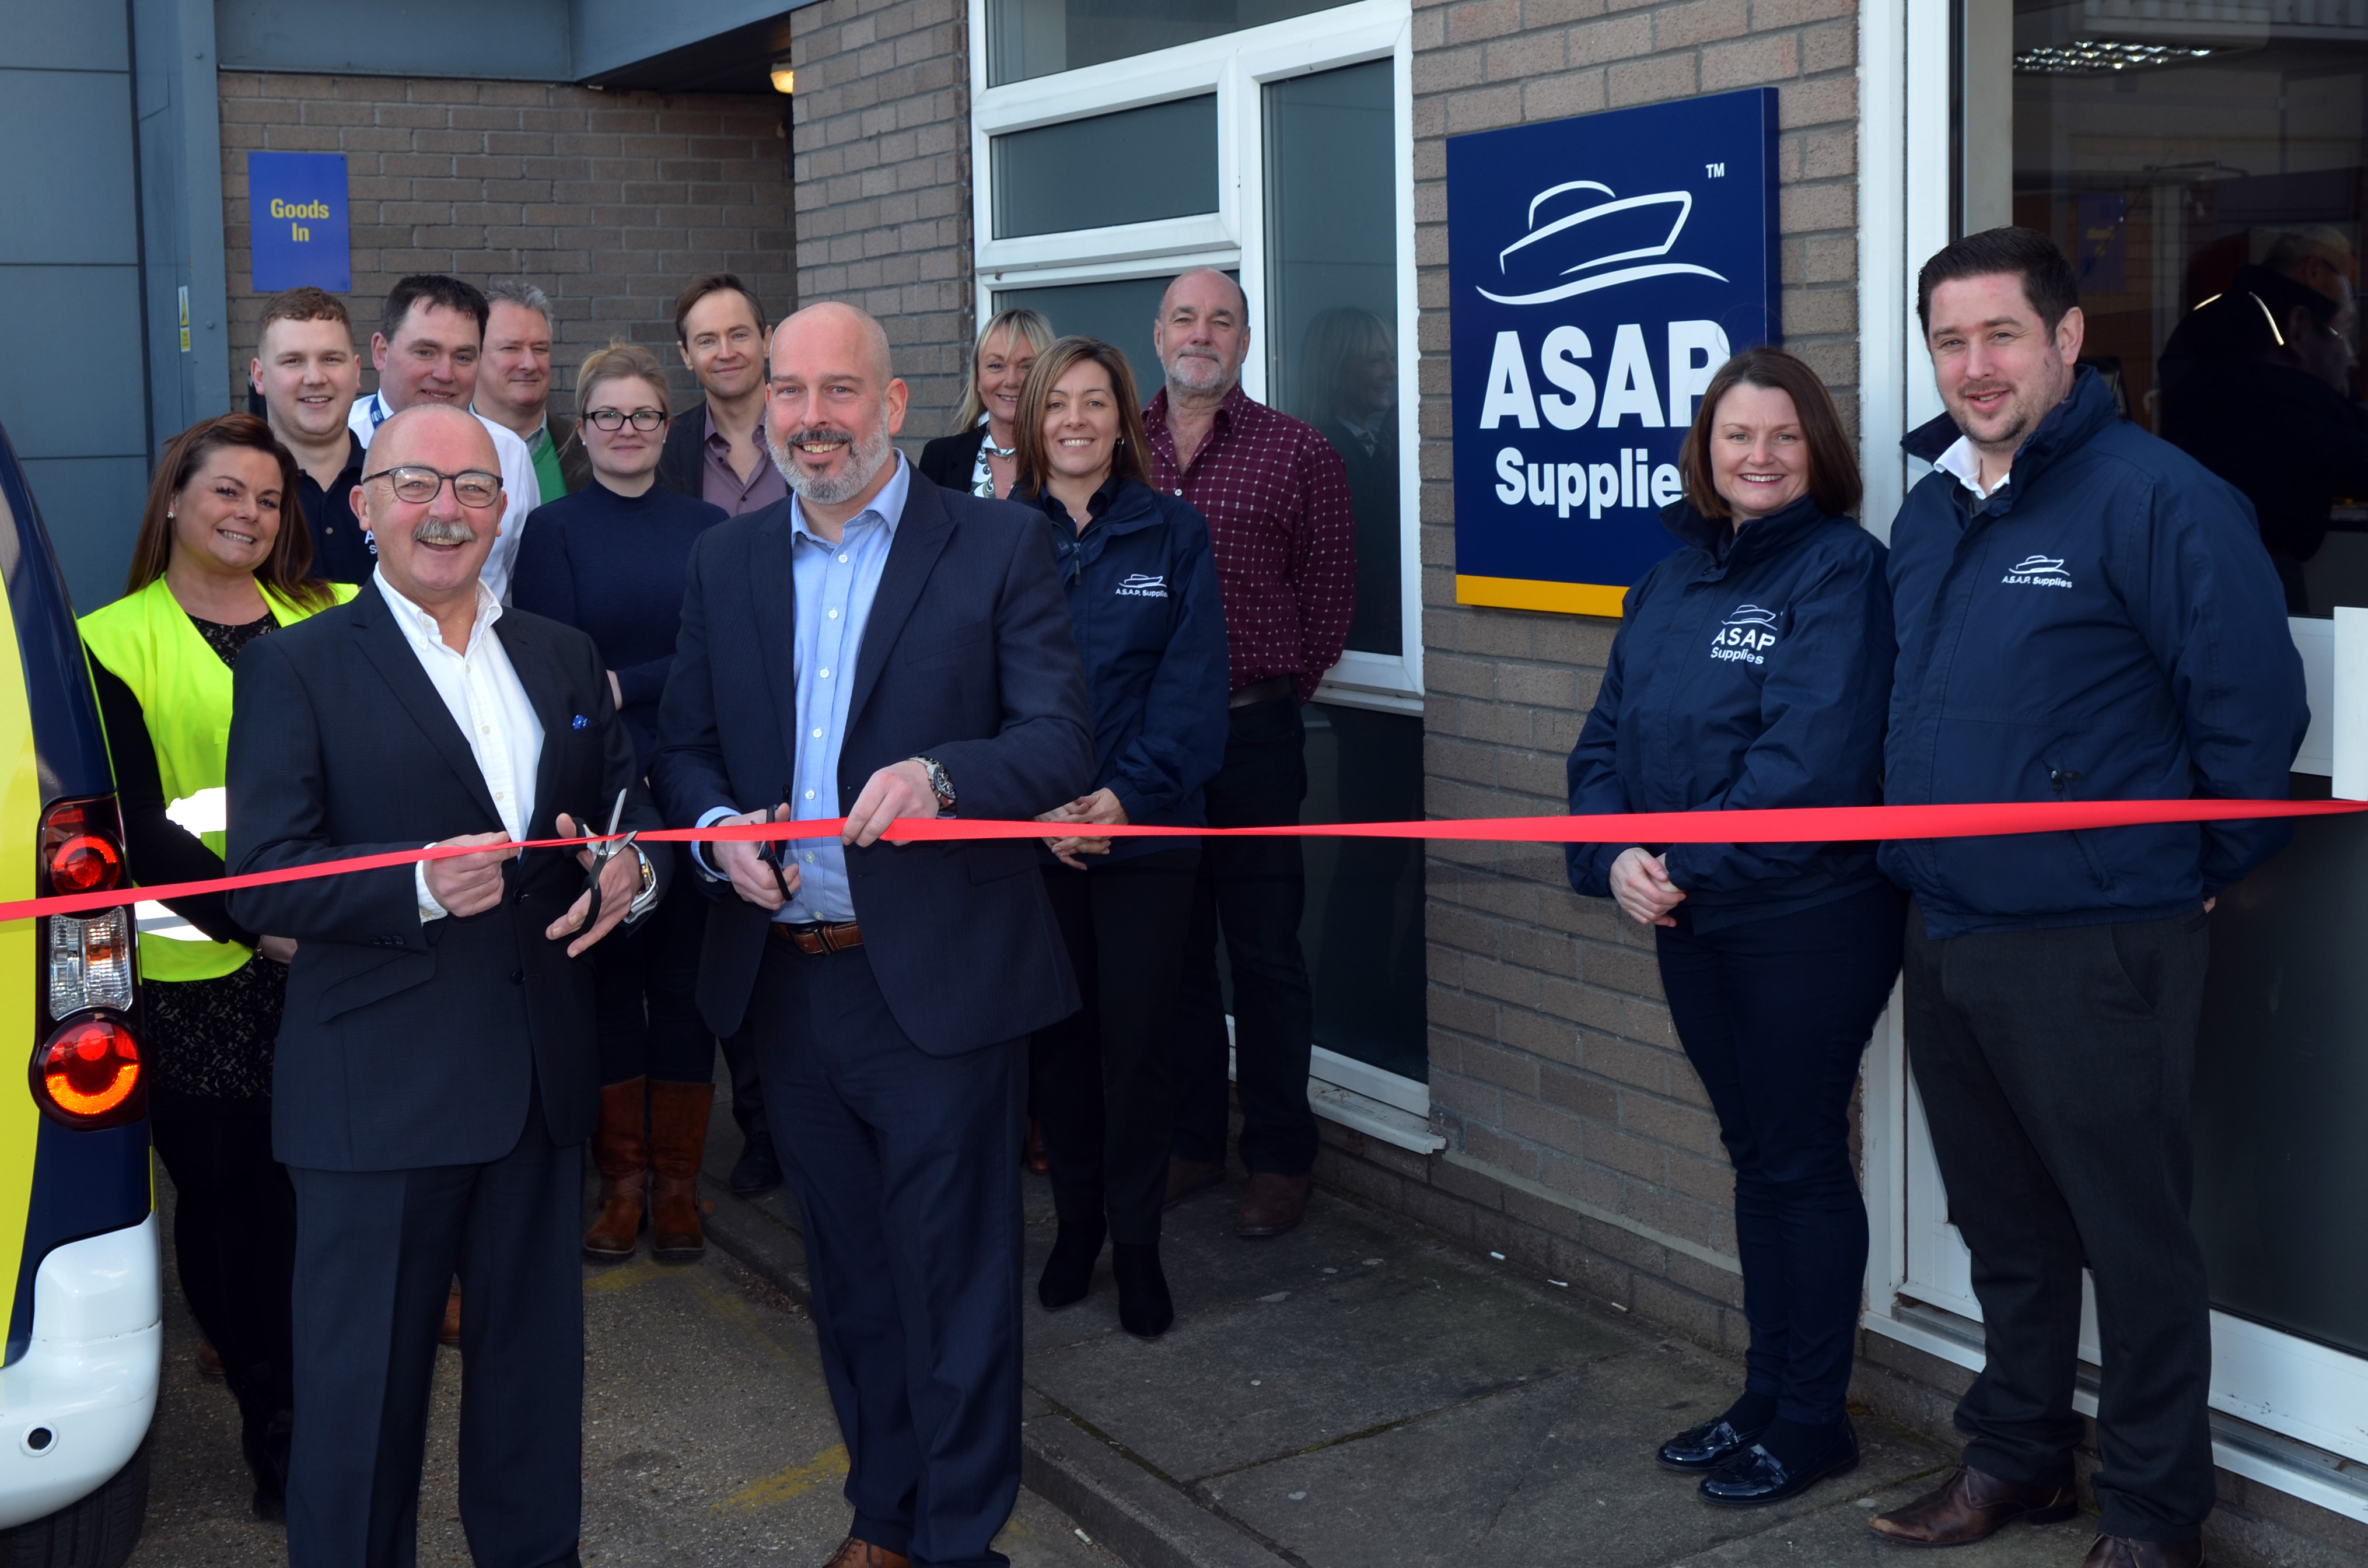 Asap Supplies In Fareham Opens For Business